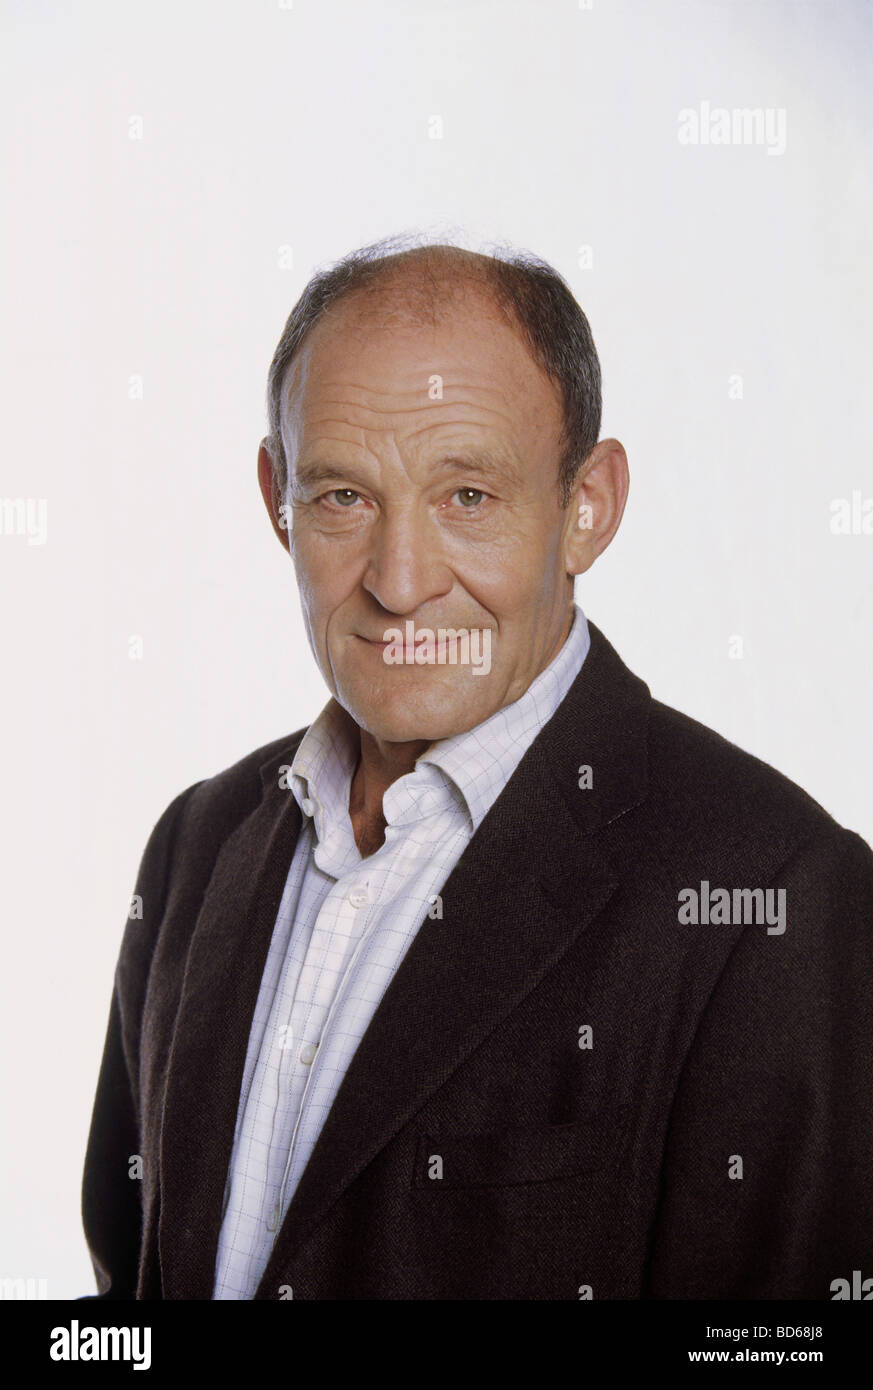 Mendl, Michael, * 20.4.1944, German actor, portrait, 2001, Additional-Rights-Clearances-NA - Stock Image